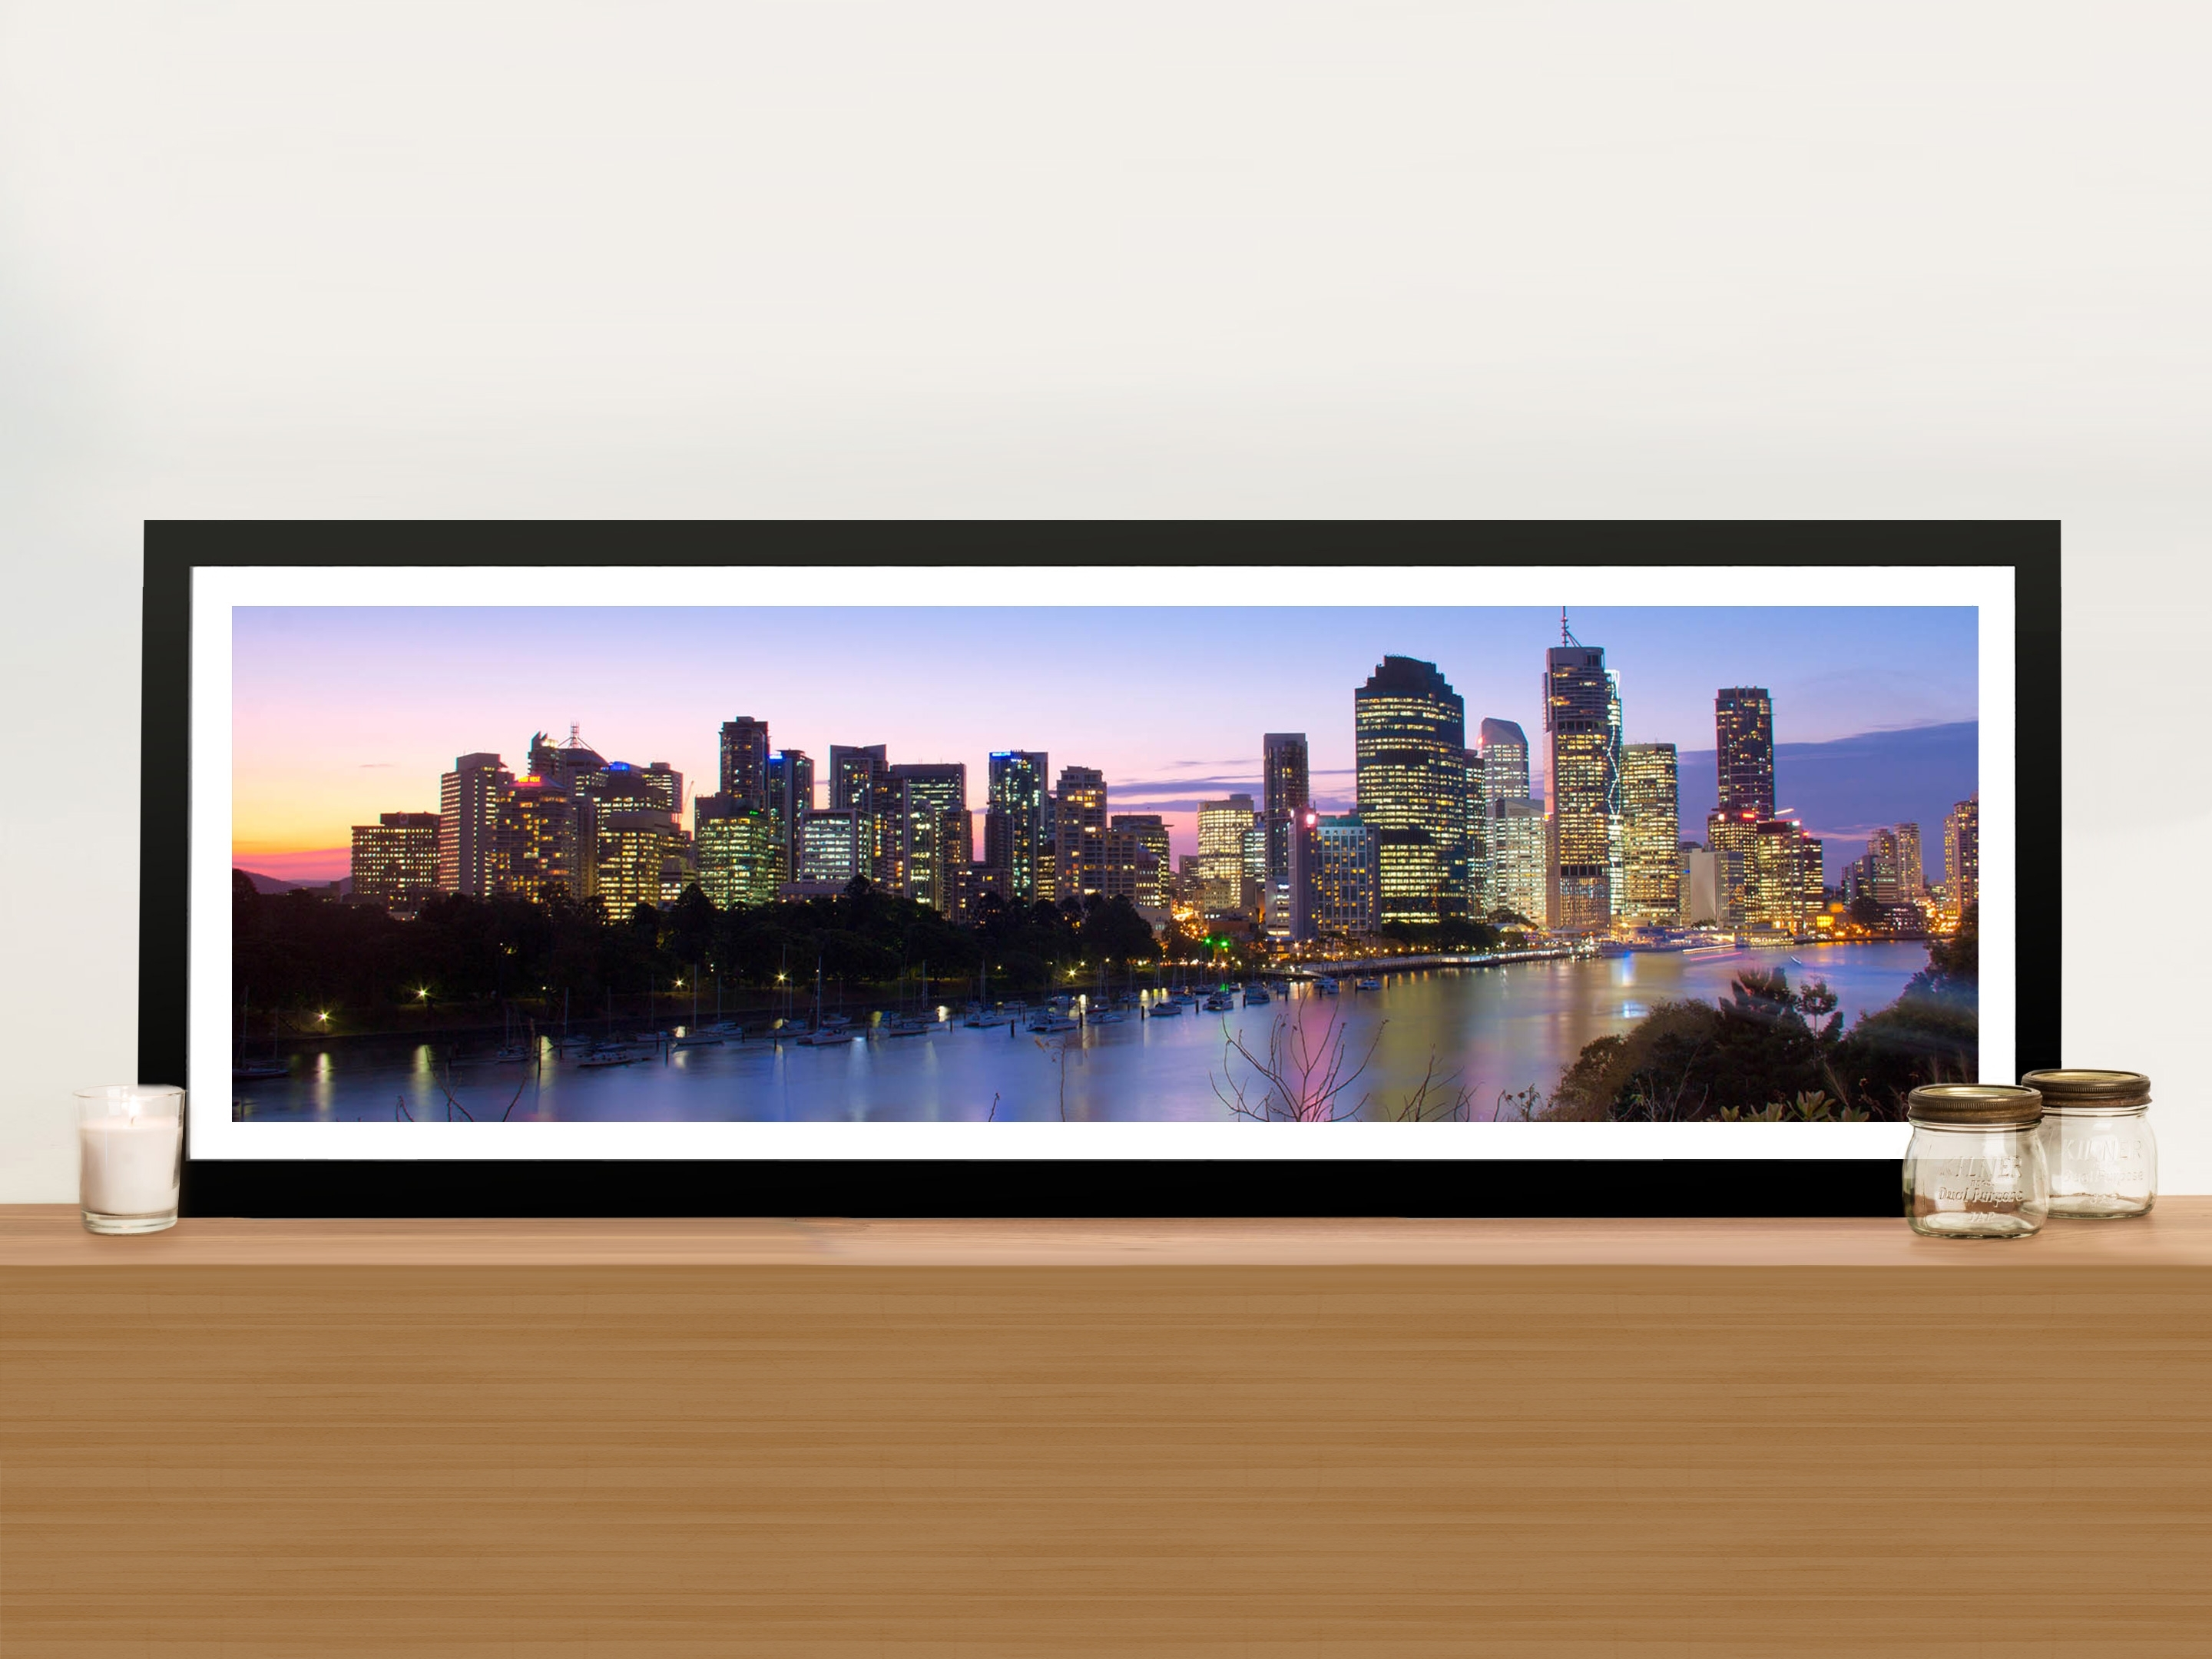 Brisbane Skyline In Panoramic View Picture Art Print On Canvas Pertaining To 2018 Panoramic Wall Art (View 4 of 15)